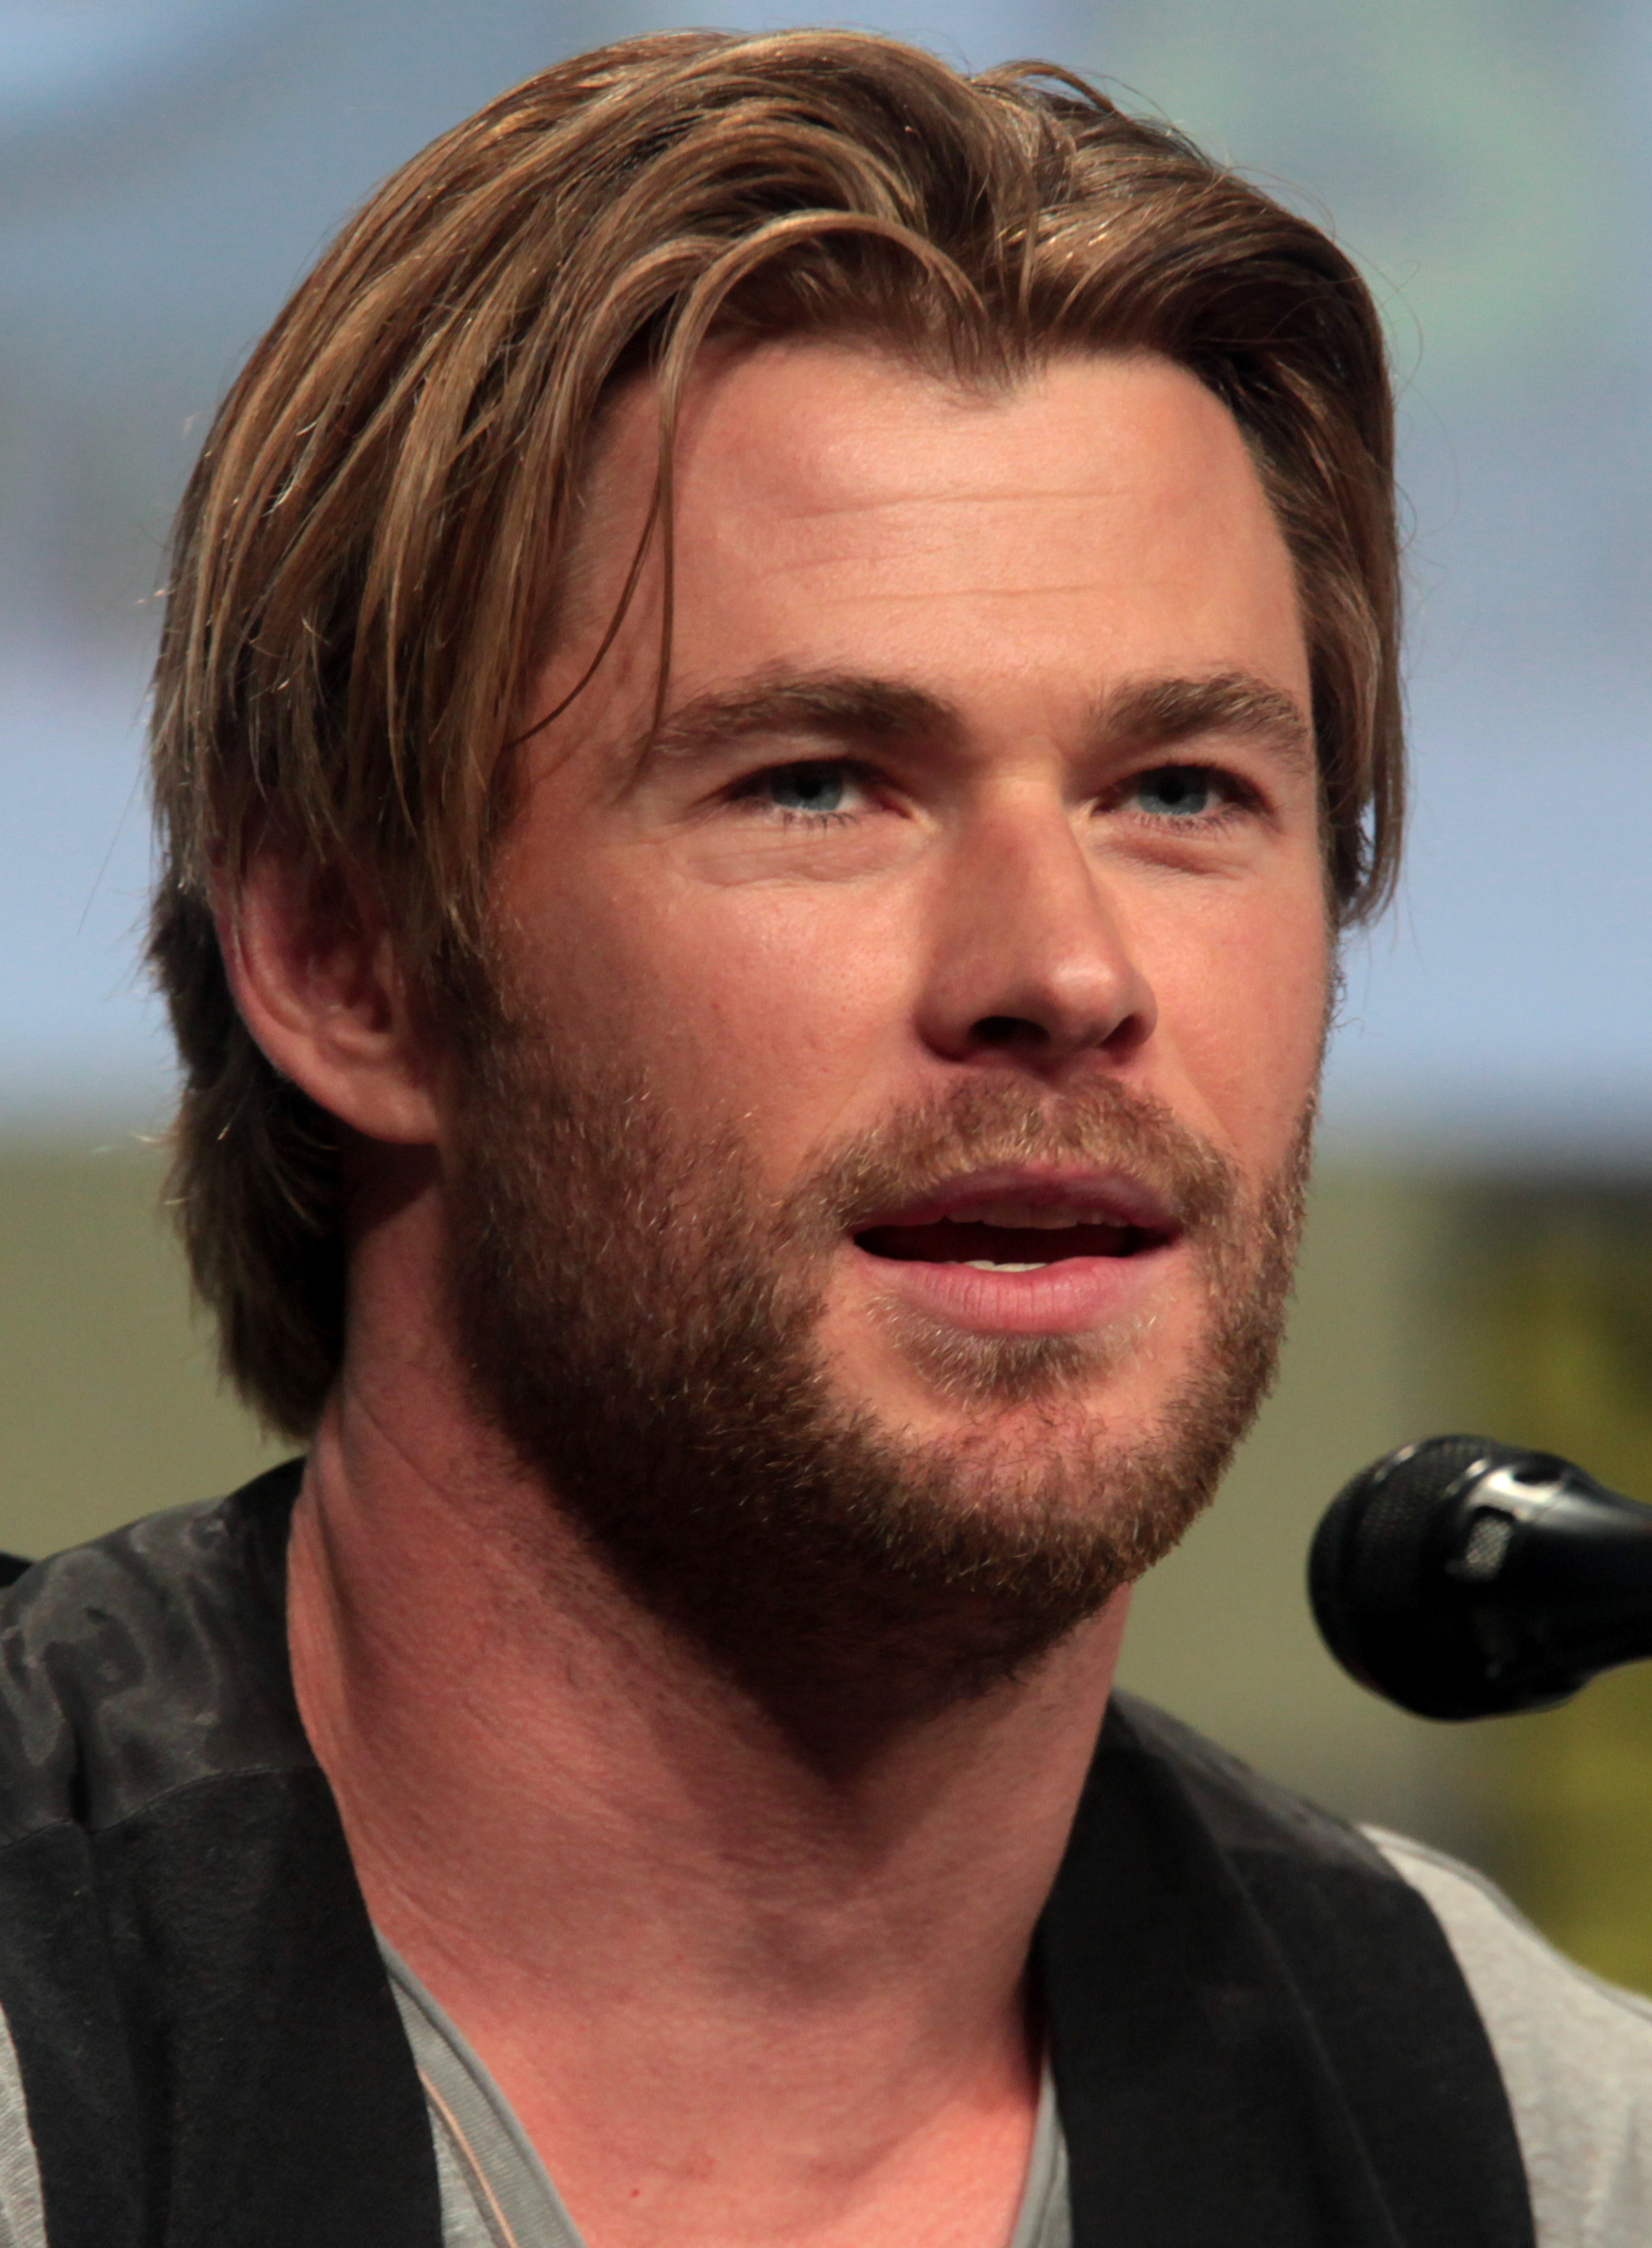 [Image: Chris_Hemsworth_SDCC_2014_%28cropped%29.jpg]